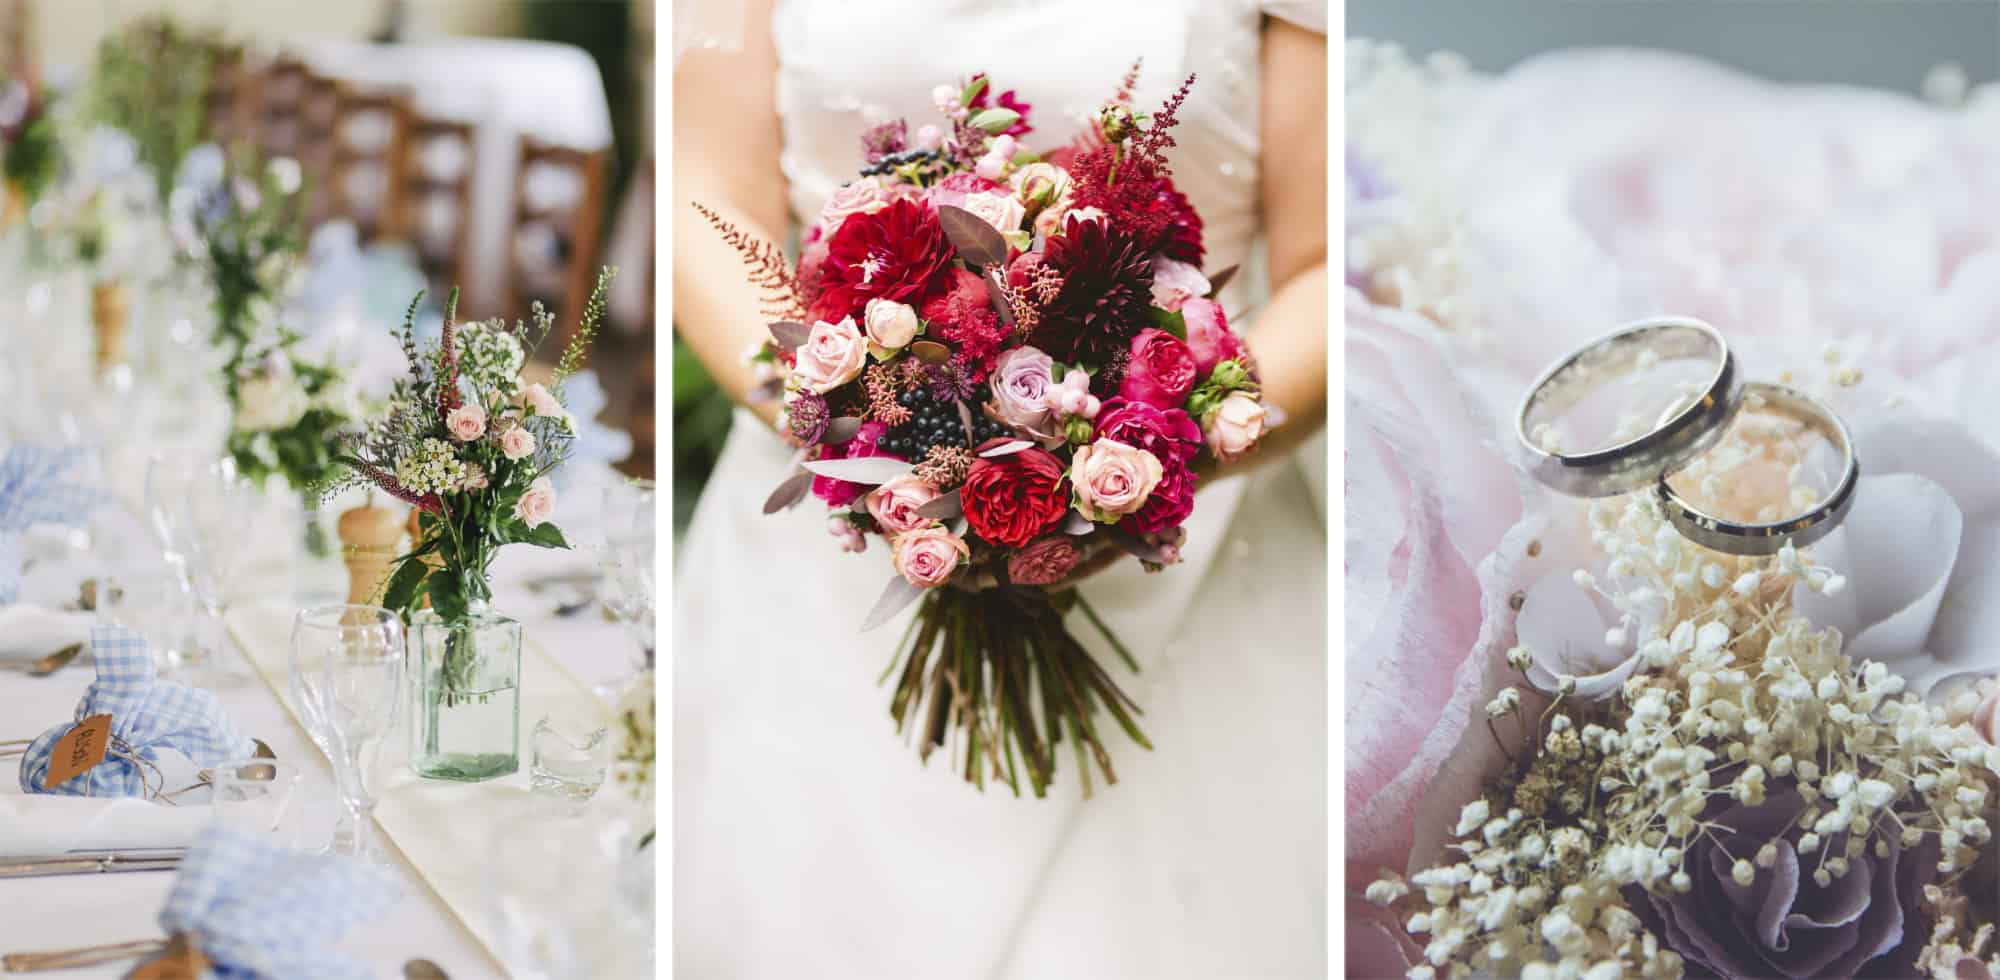 15 Noticeable Differences Between British and American Weddings